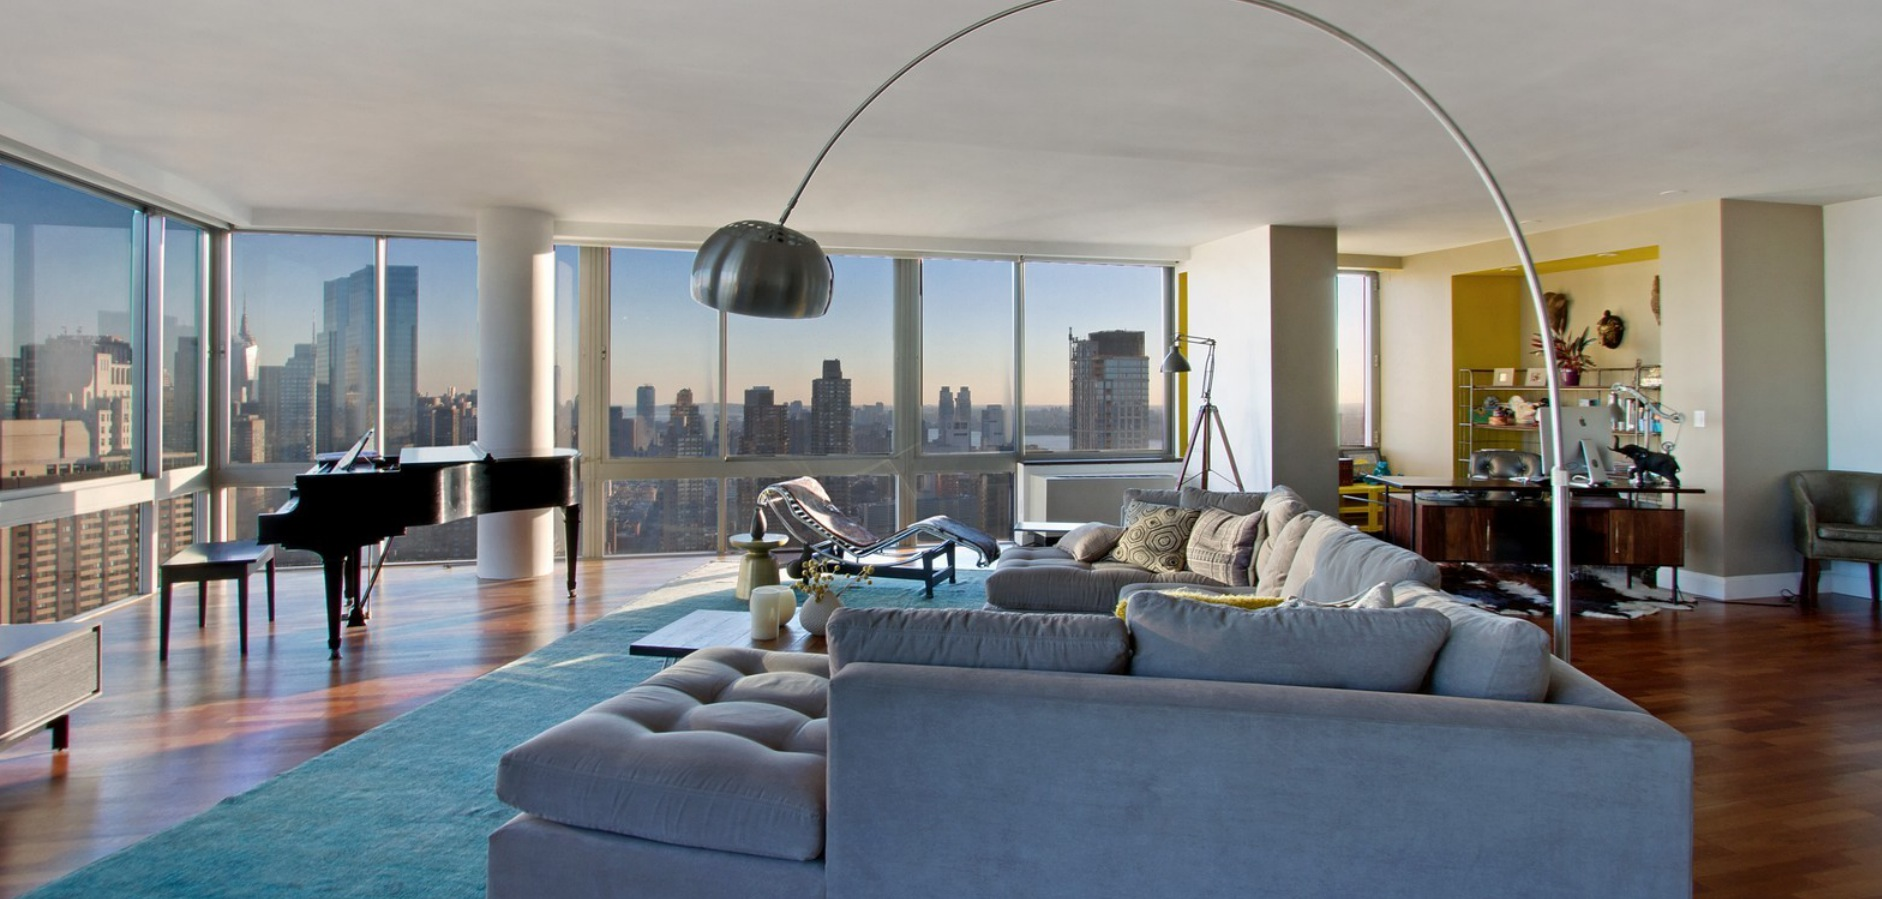 13 Stunning Apartments In New York: 10 Super Pricey Apartments In New York